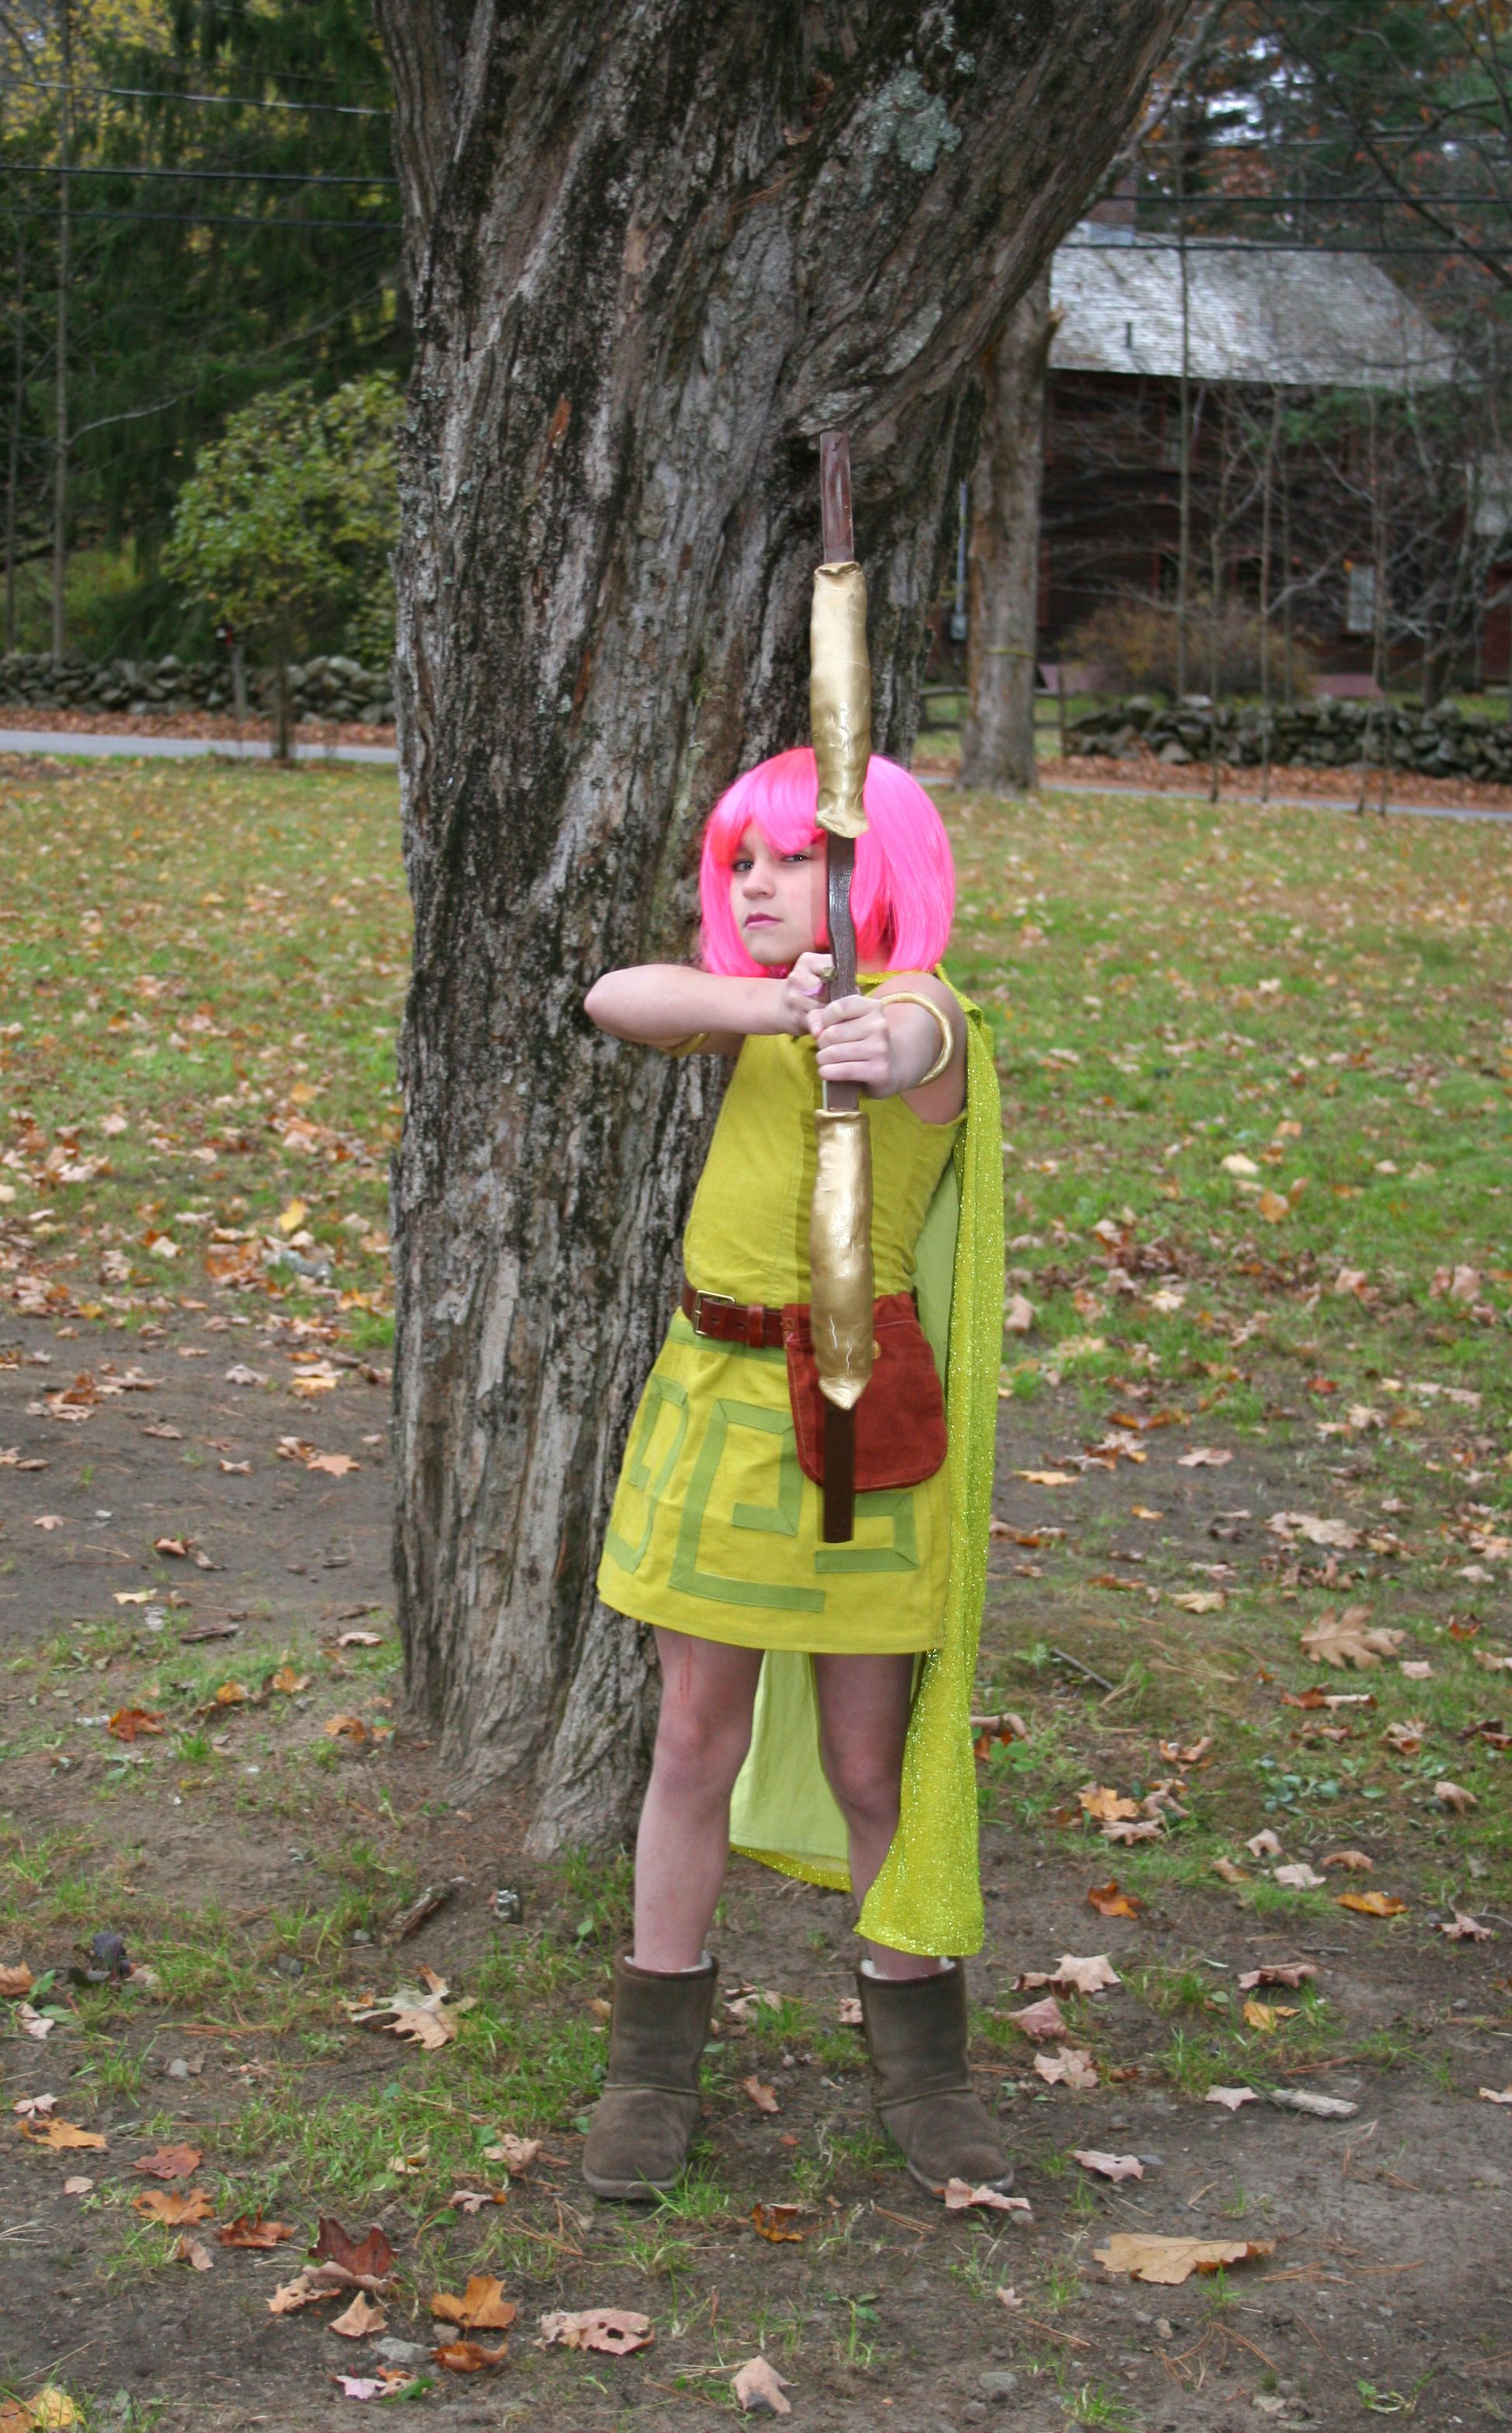 Clash of Clans Costume | Costume works, Halloween costume contest ...